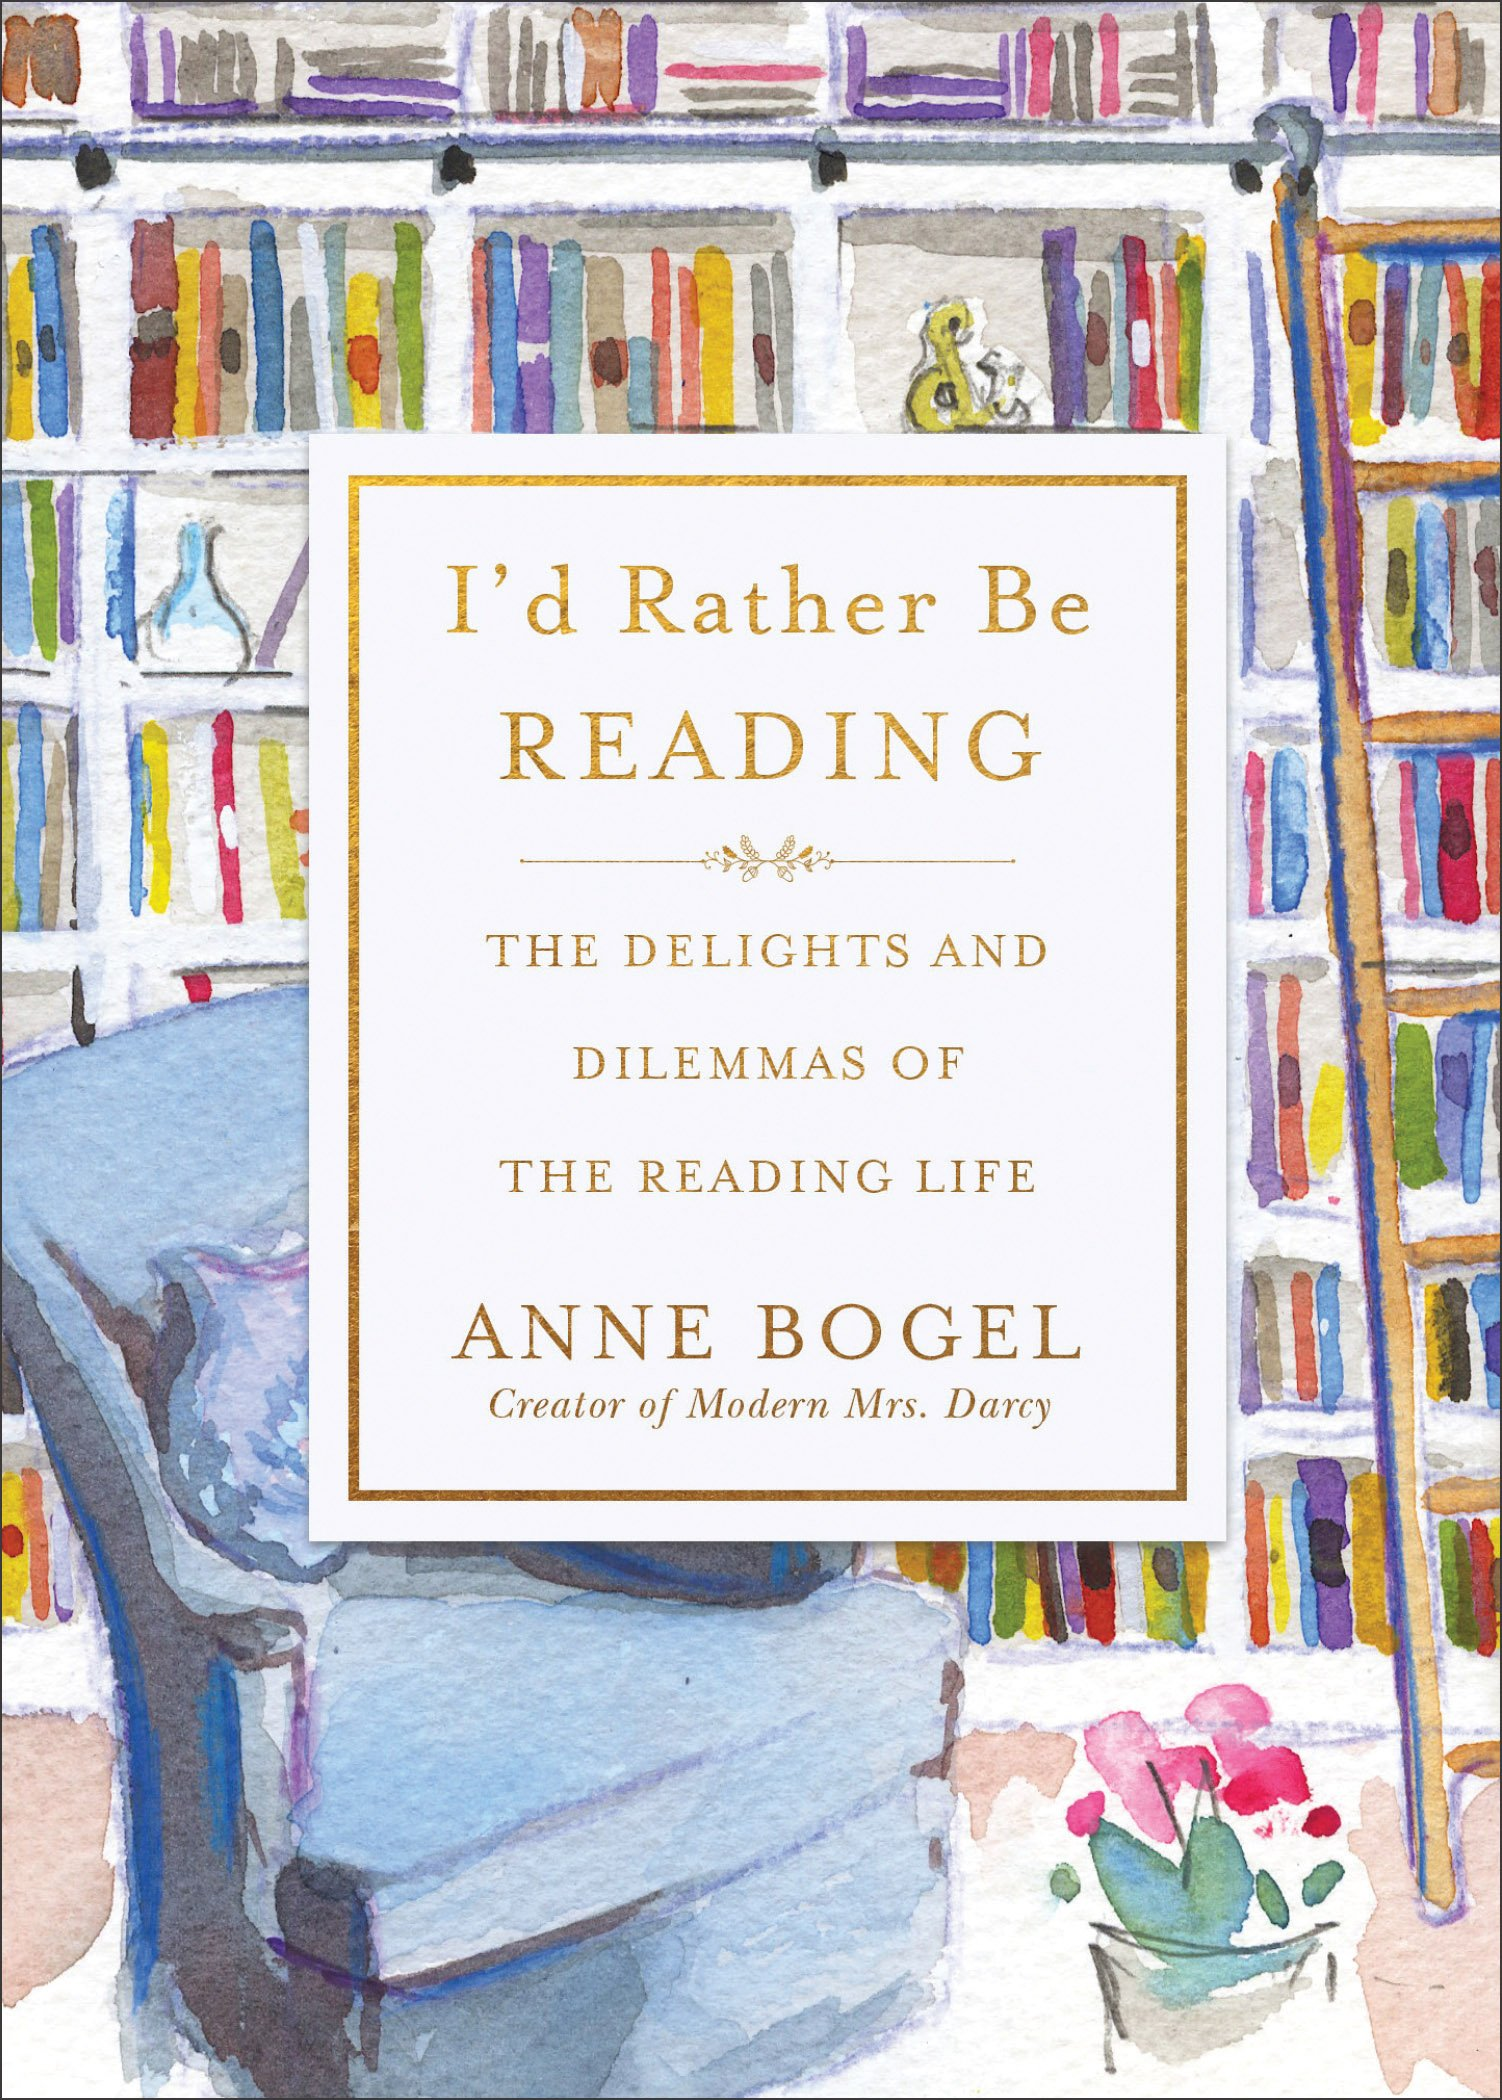 Id-Rather-Be-Reading-cover